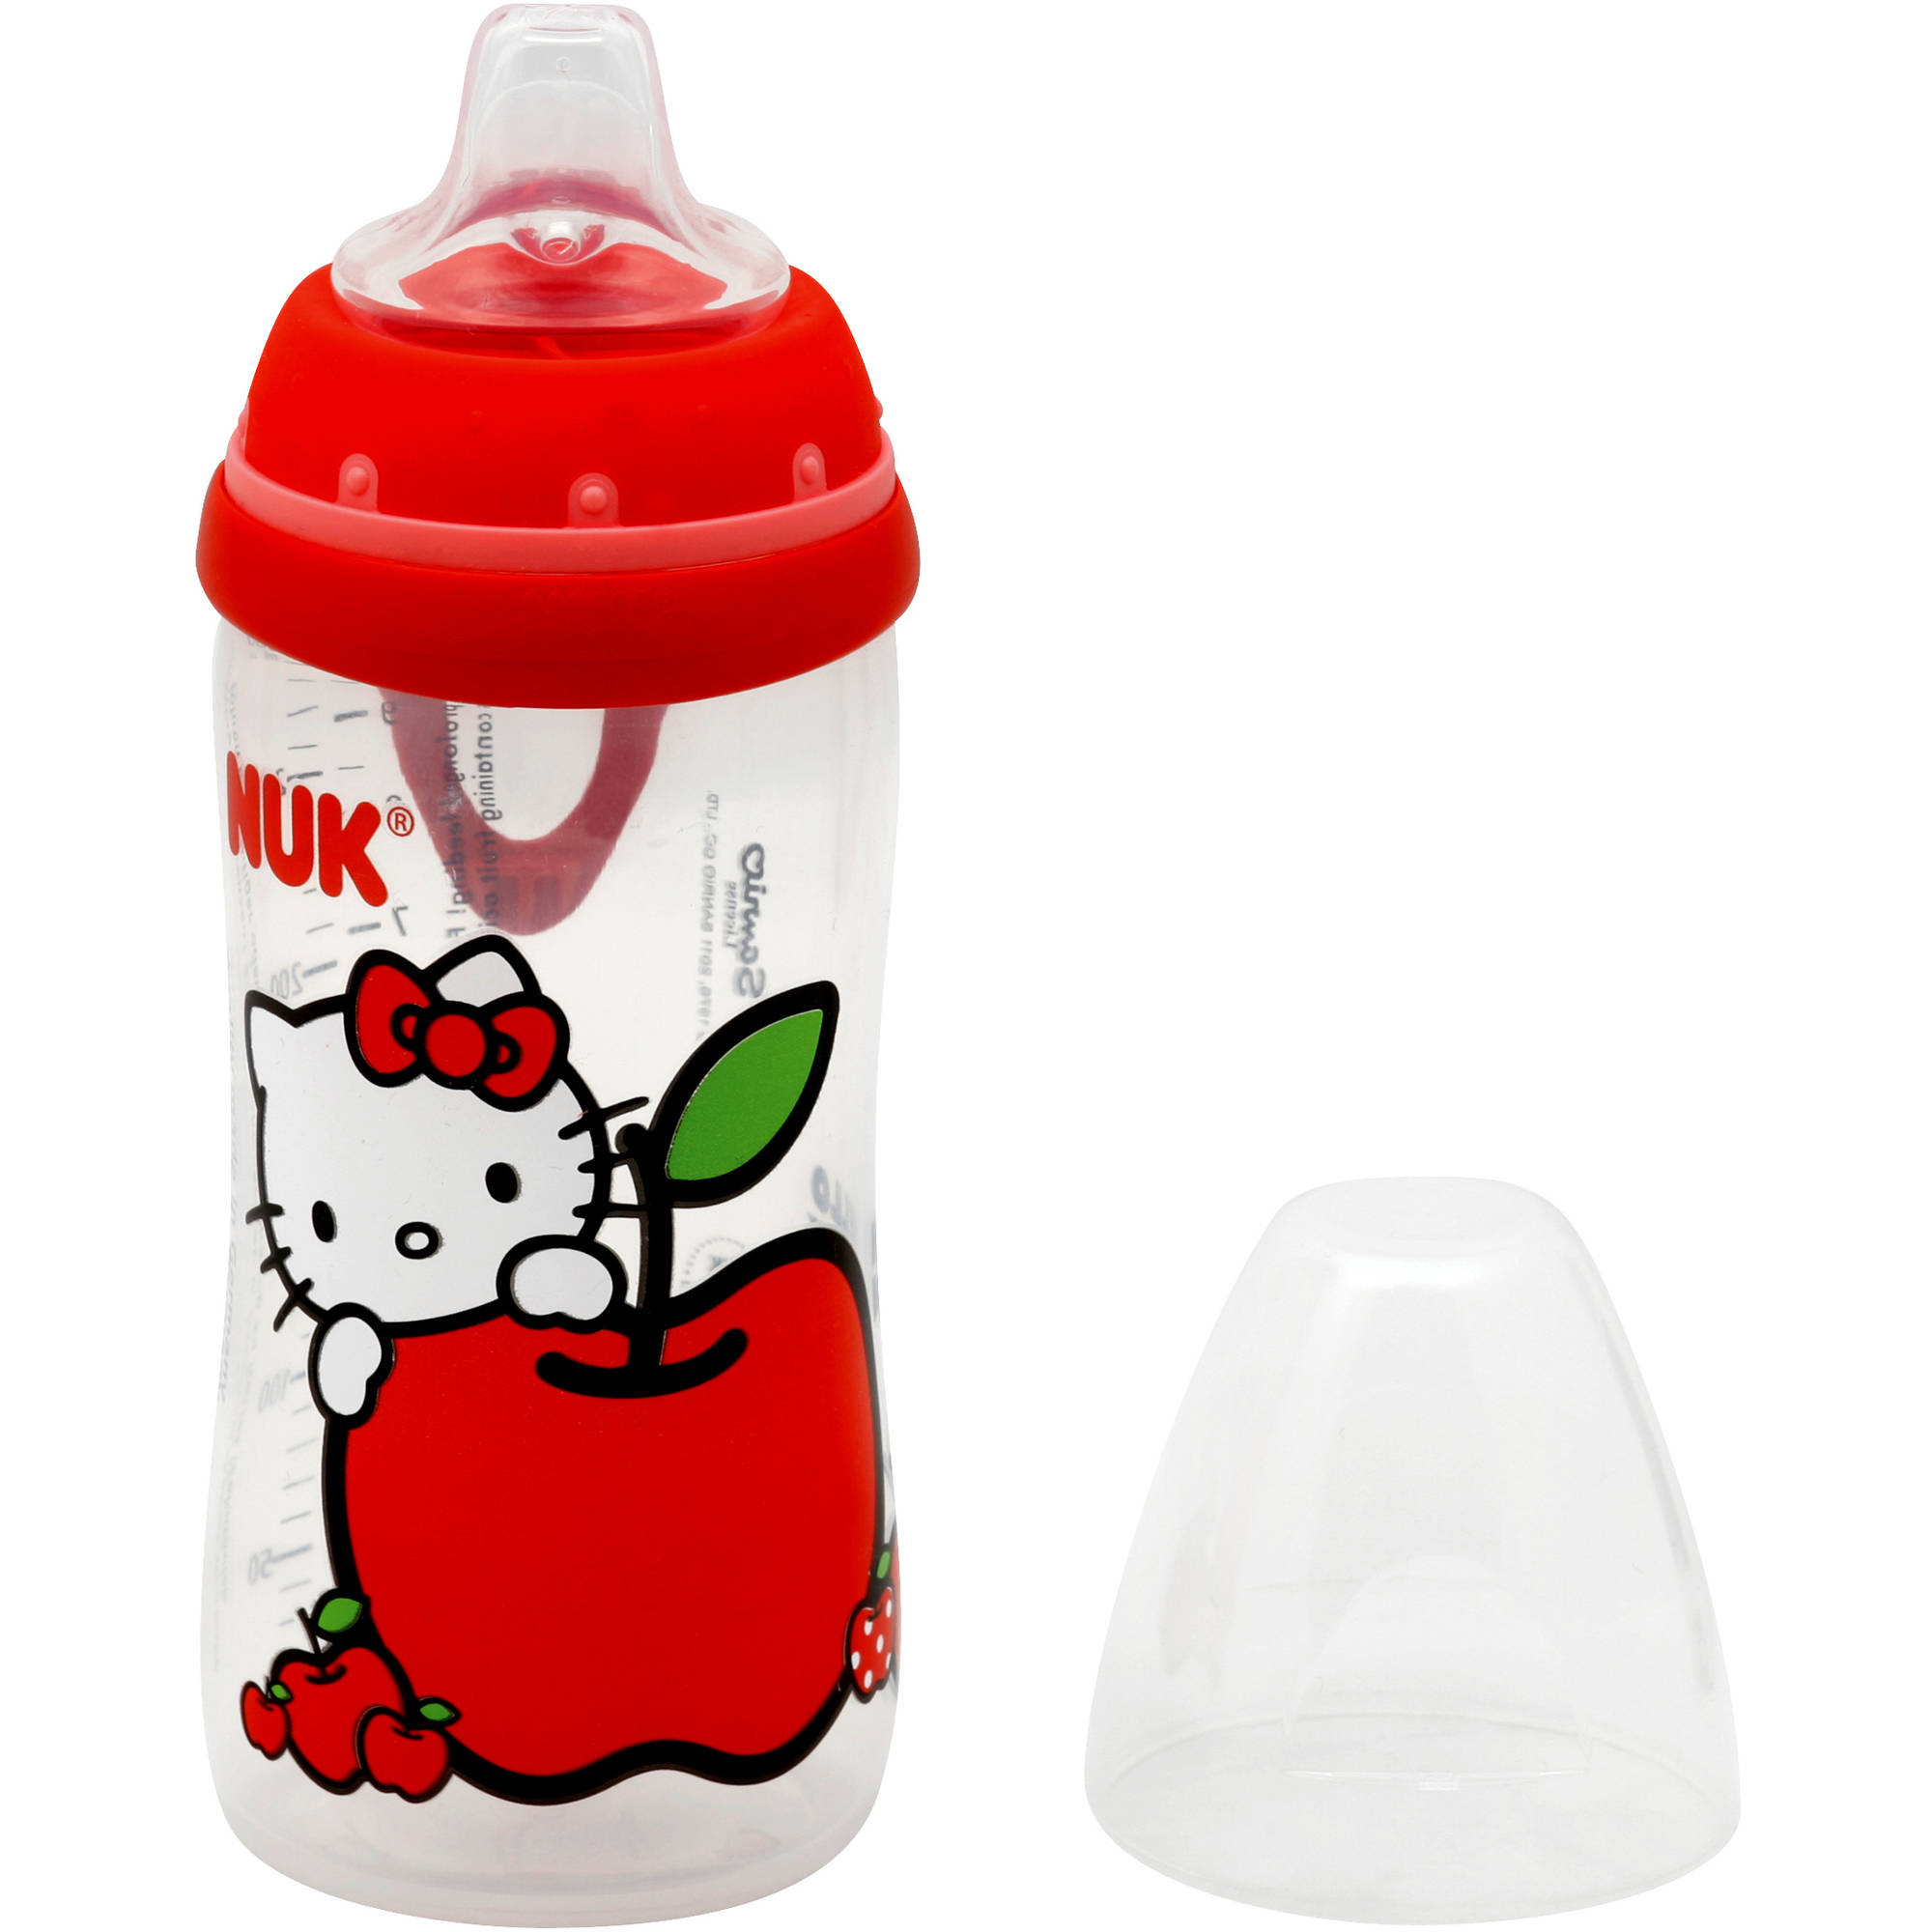 NUK - Hello Kitty 10oz Active Cup, BPA-Free